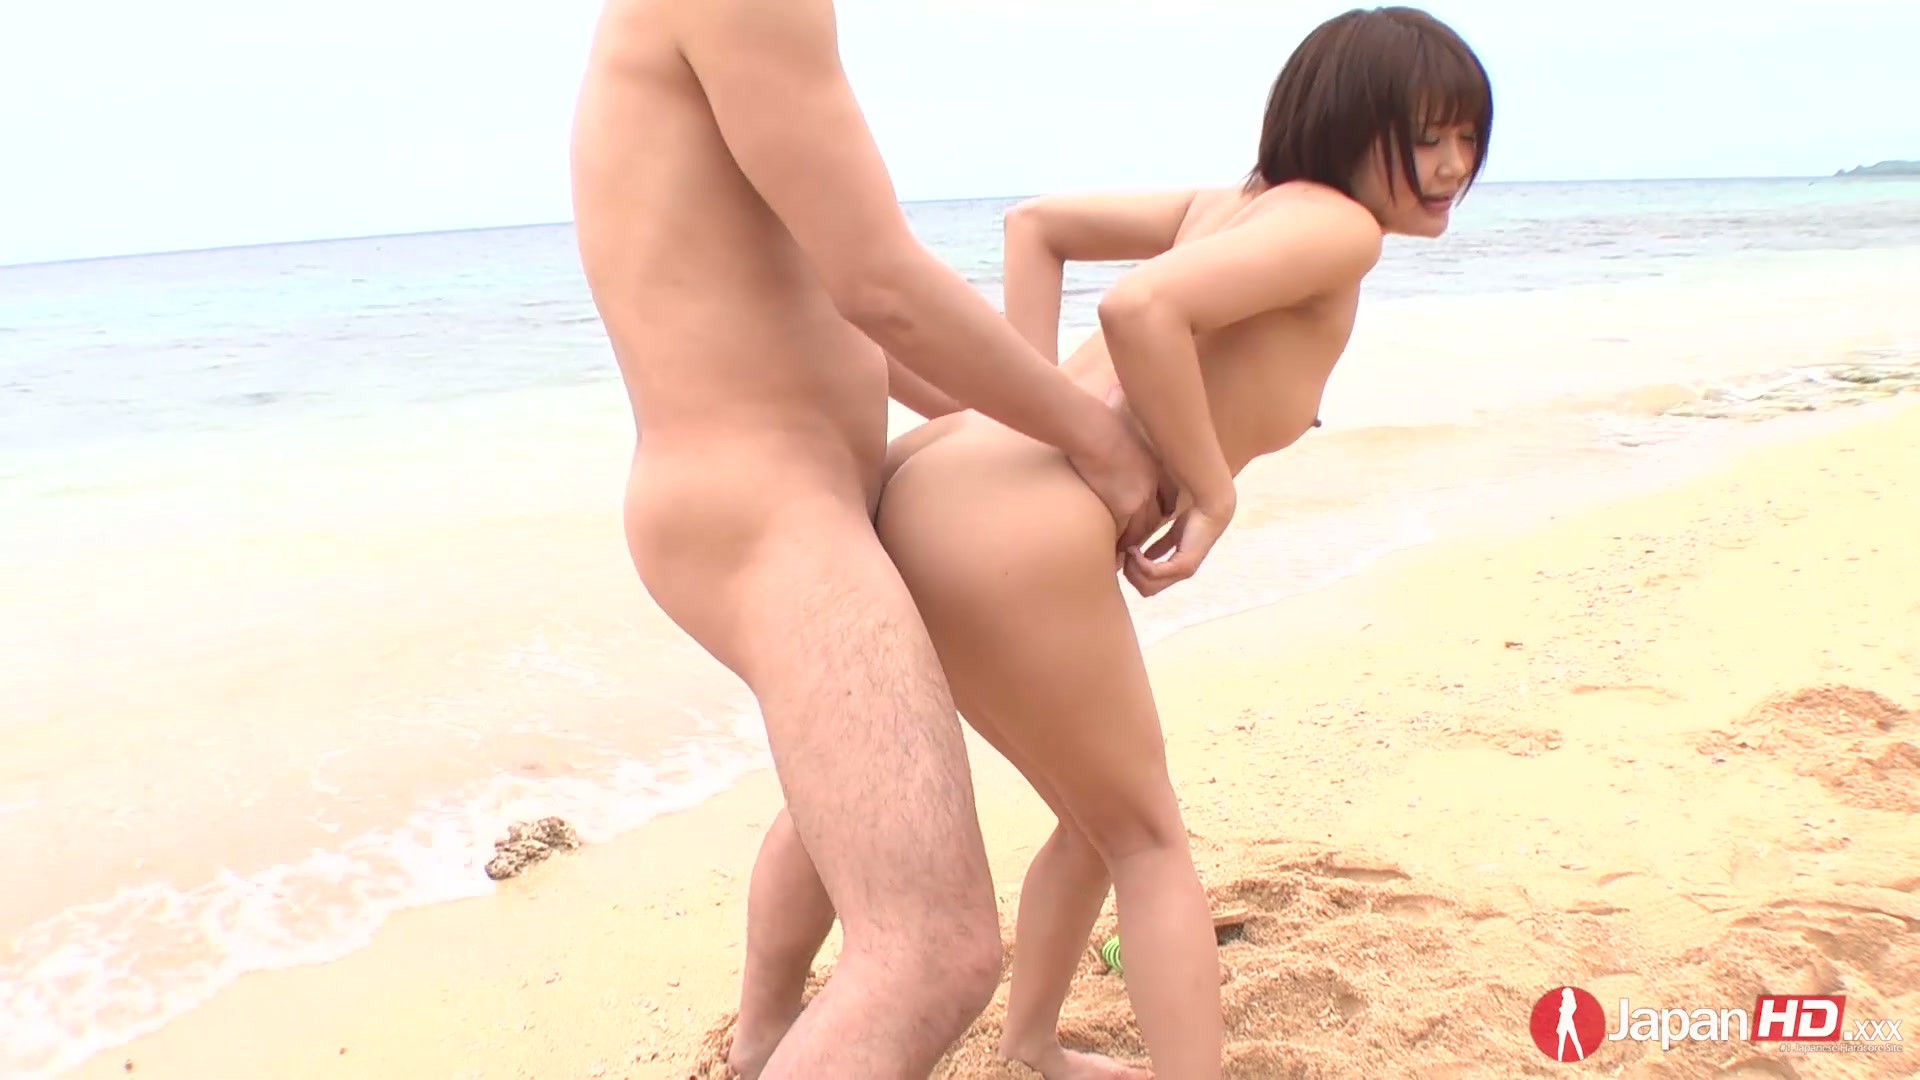 orgasam teens can an when have